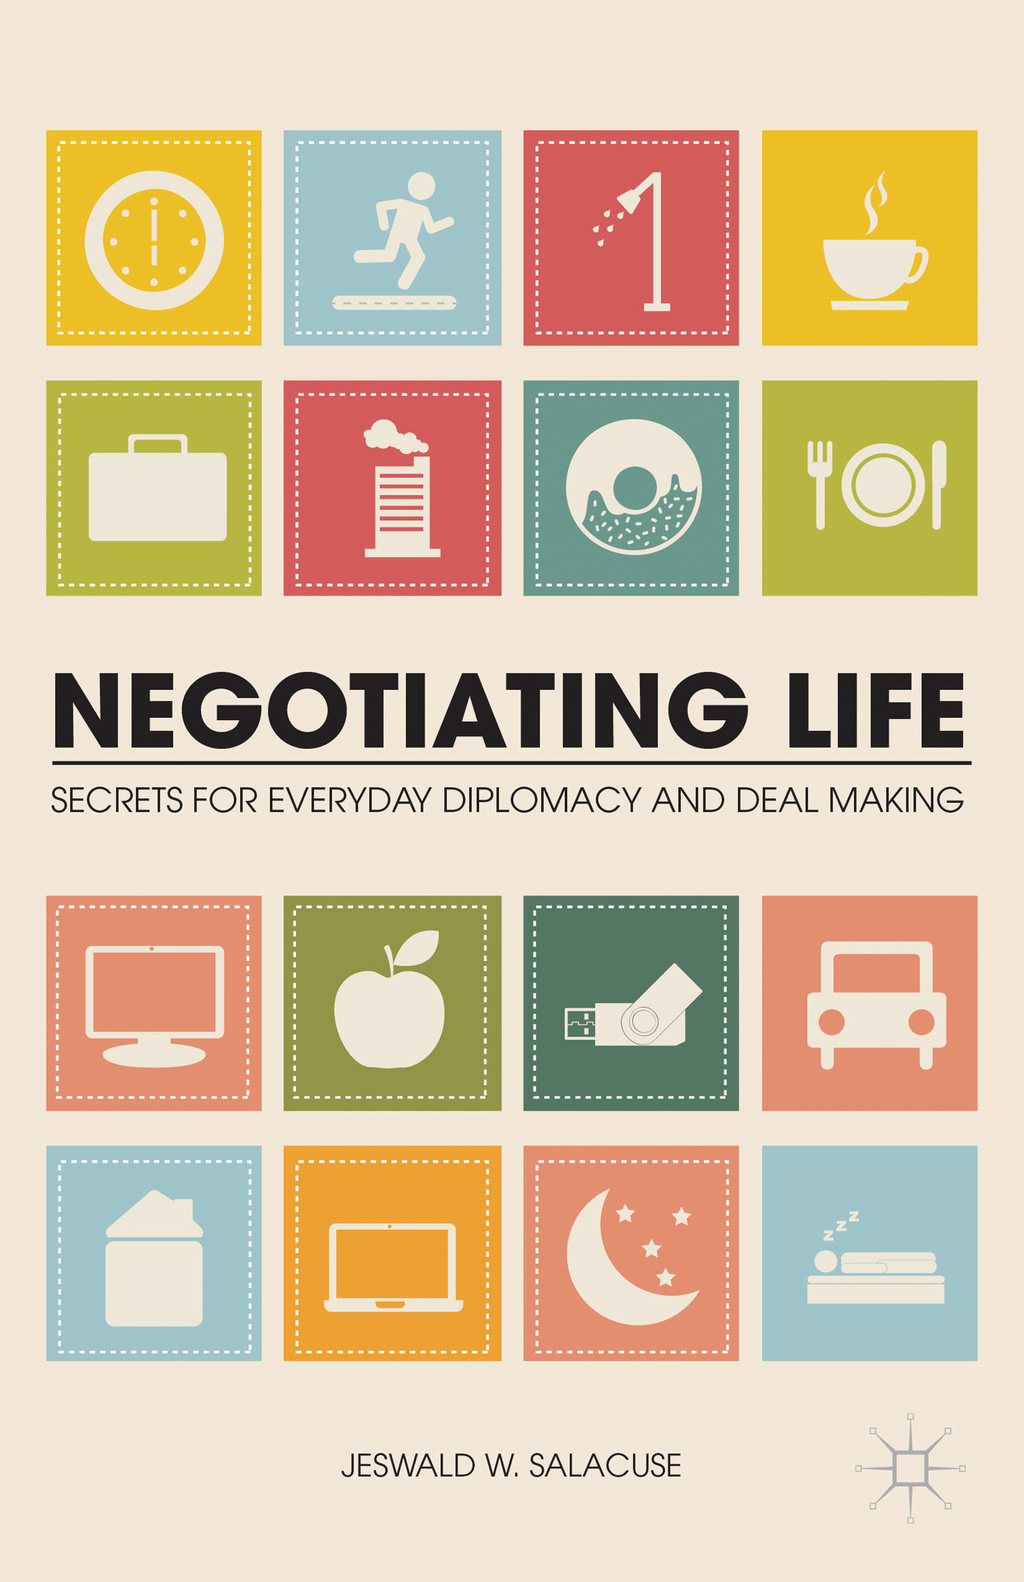 Negotiating Life Secrets for Everyday Diplomacy and Deal Making